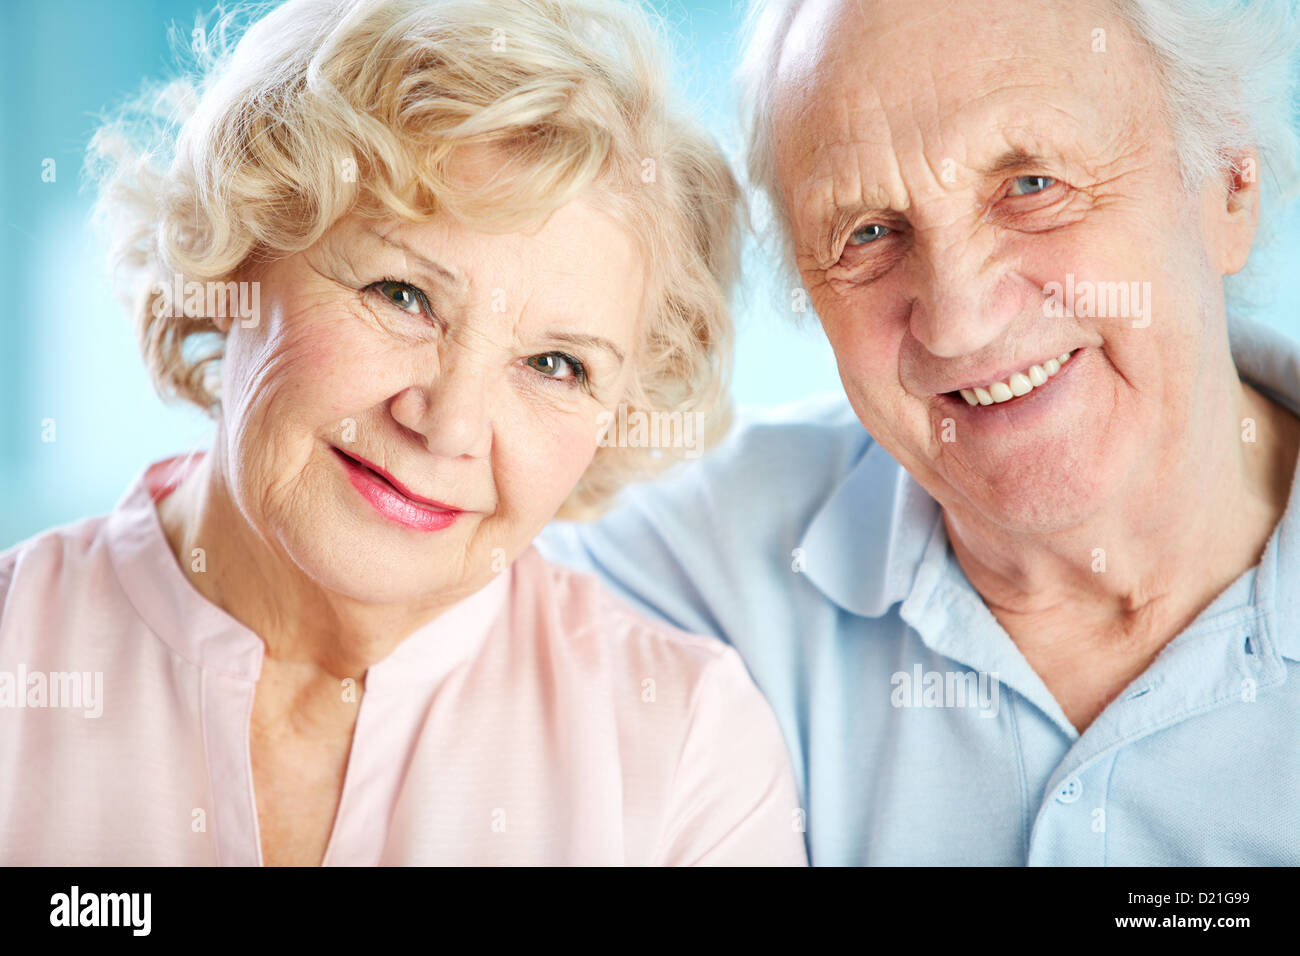 Close-up portrait of a charming elder couple looking at the viewer with a smile - Stock Image